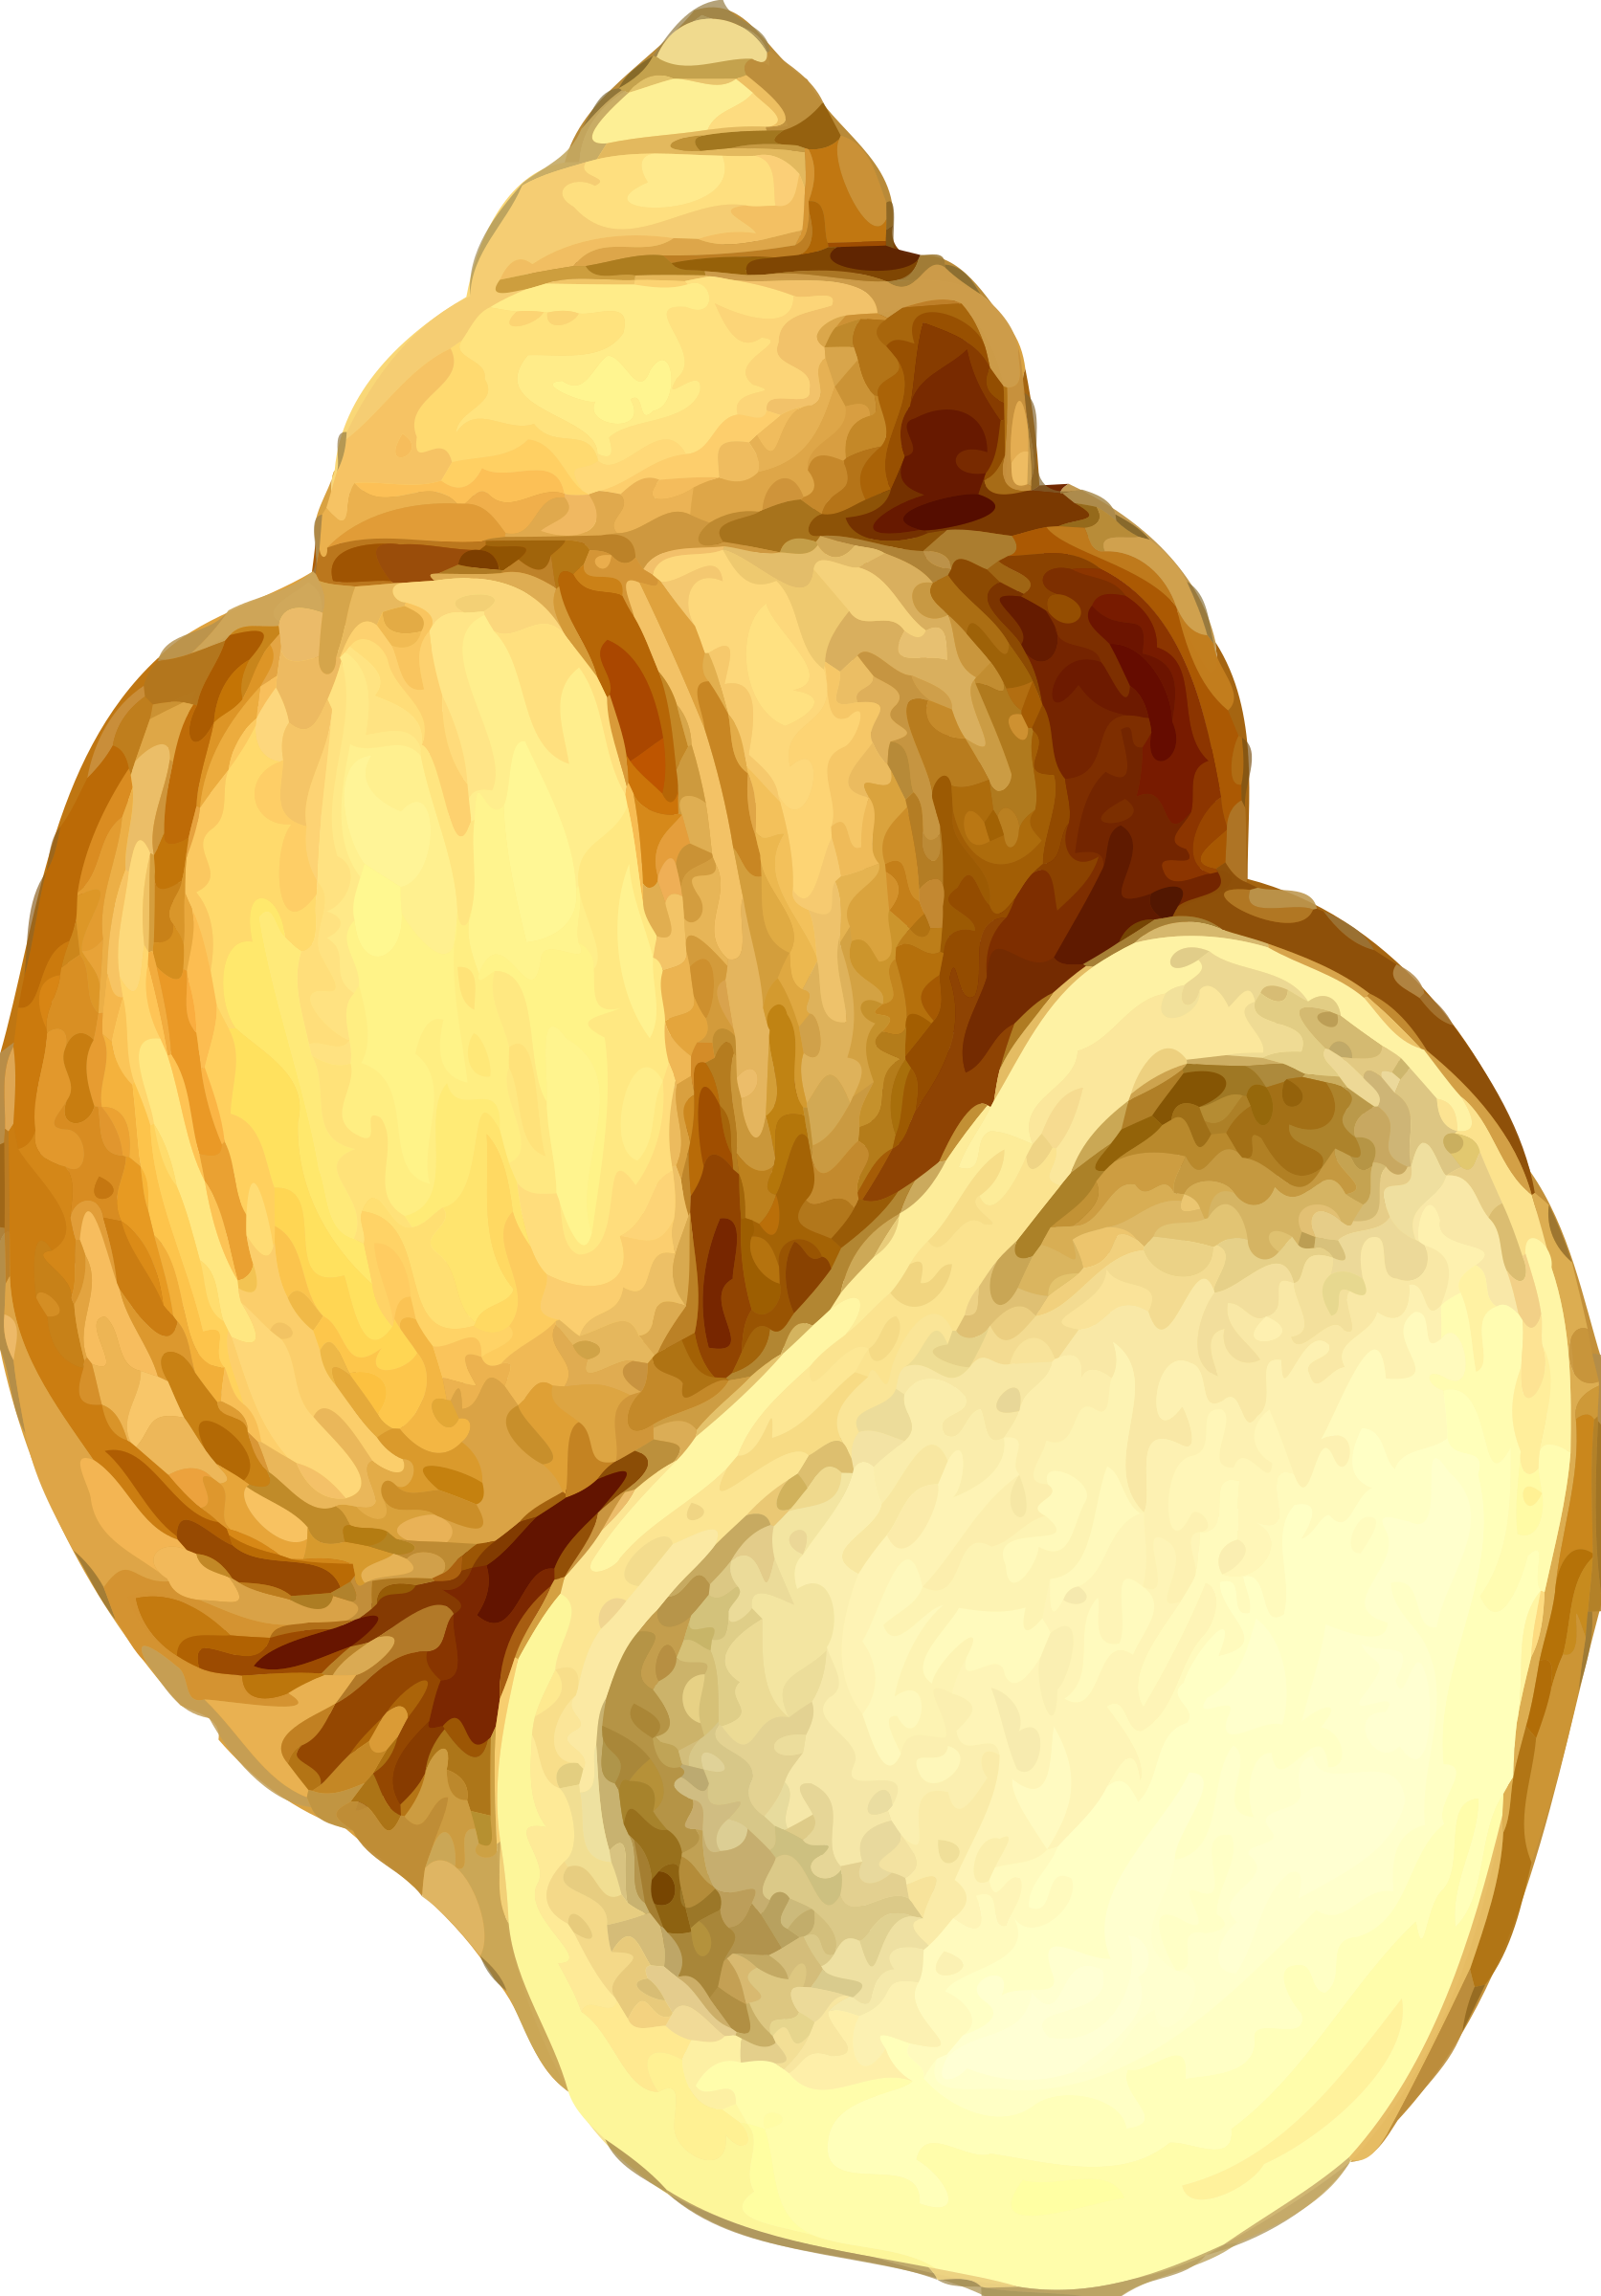 Shell clipart sea foods. Big image png